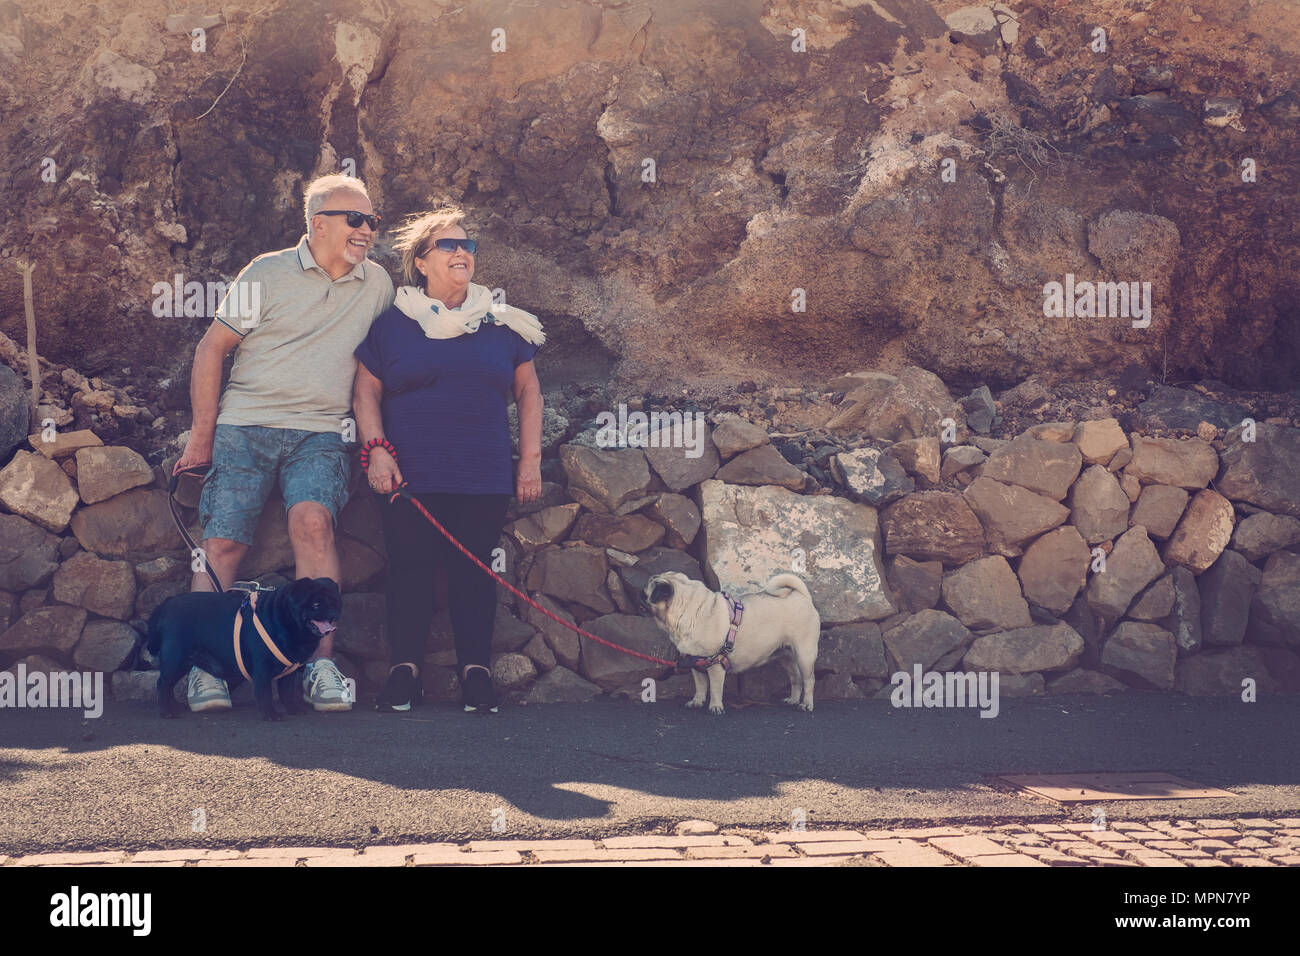 Elderly couple with two nice pugs cream and black ones. Sit down near a rocks mountain background. Looking at the sun in a beautiful day - Stock Image